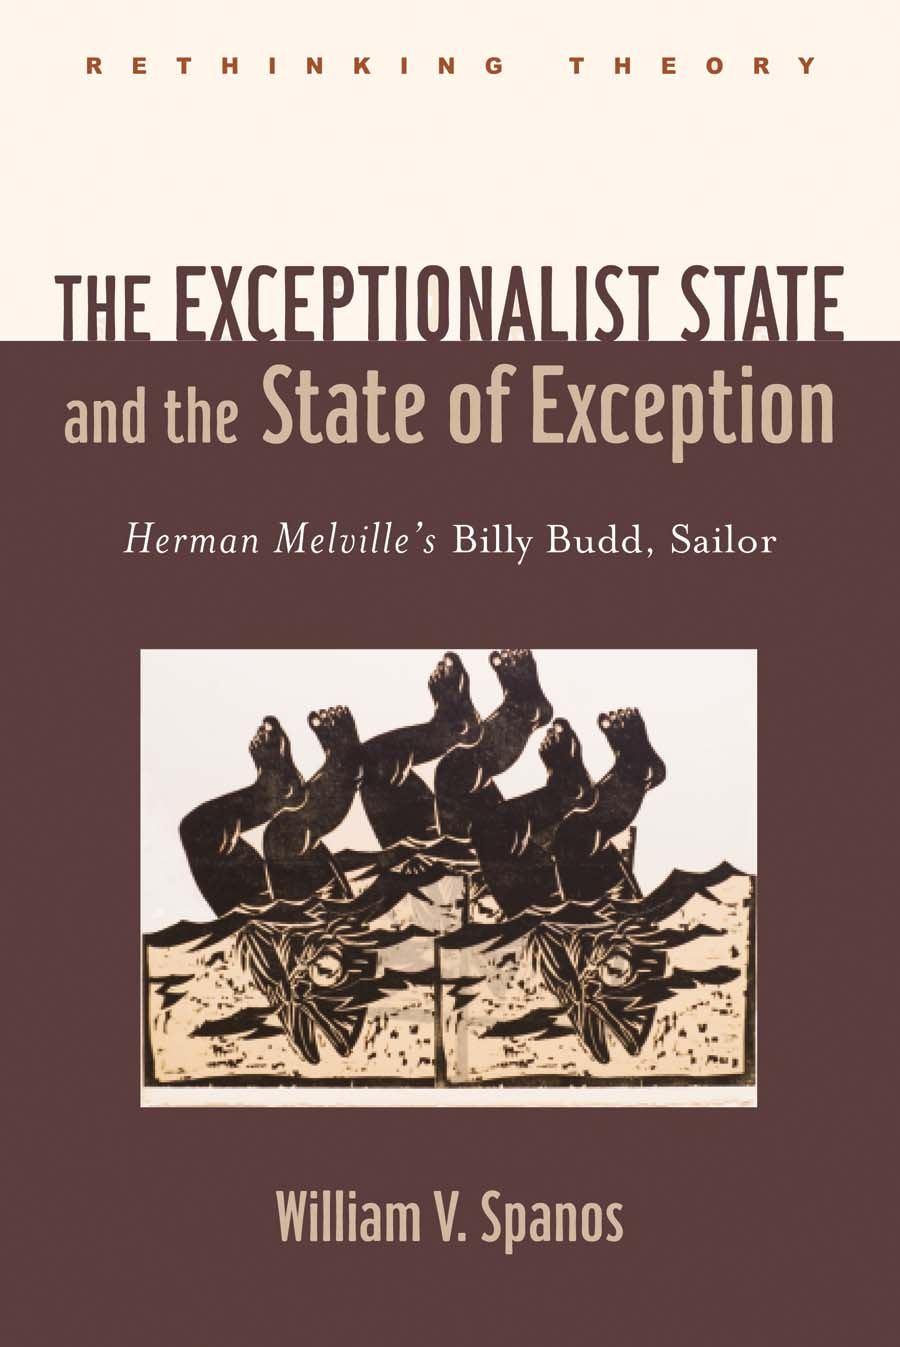 The Exceptionalist State and the State of Exception – Herman Melville?s Billy Budd, Sailor basil mosenthal the sailor s little book